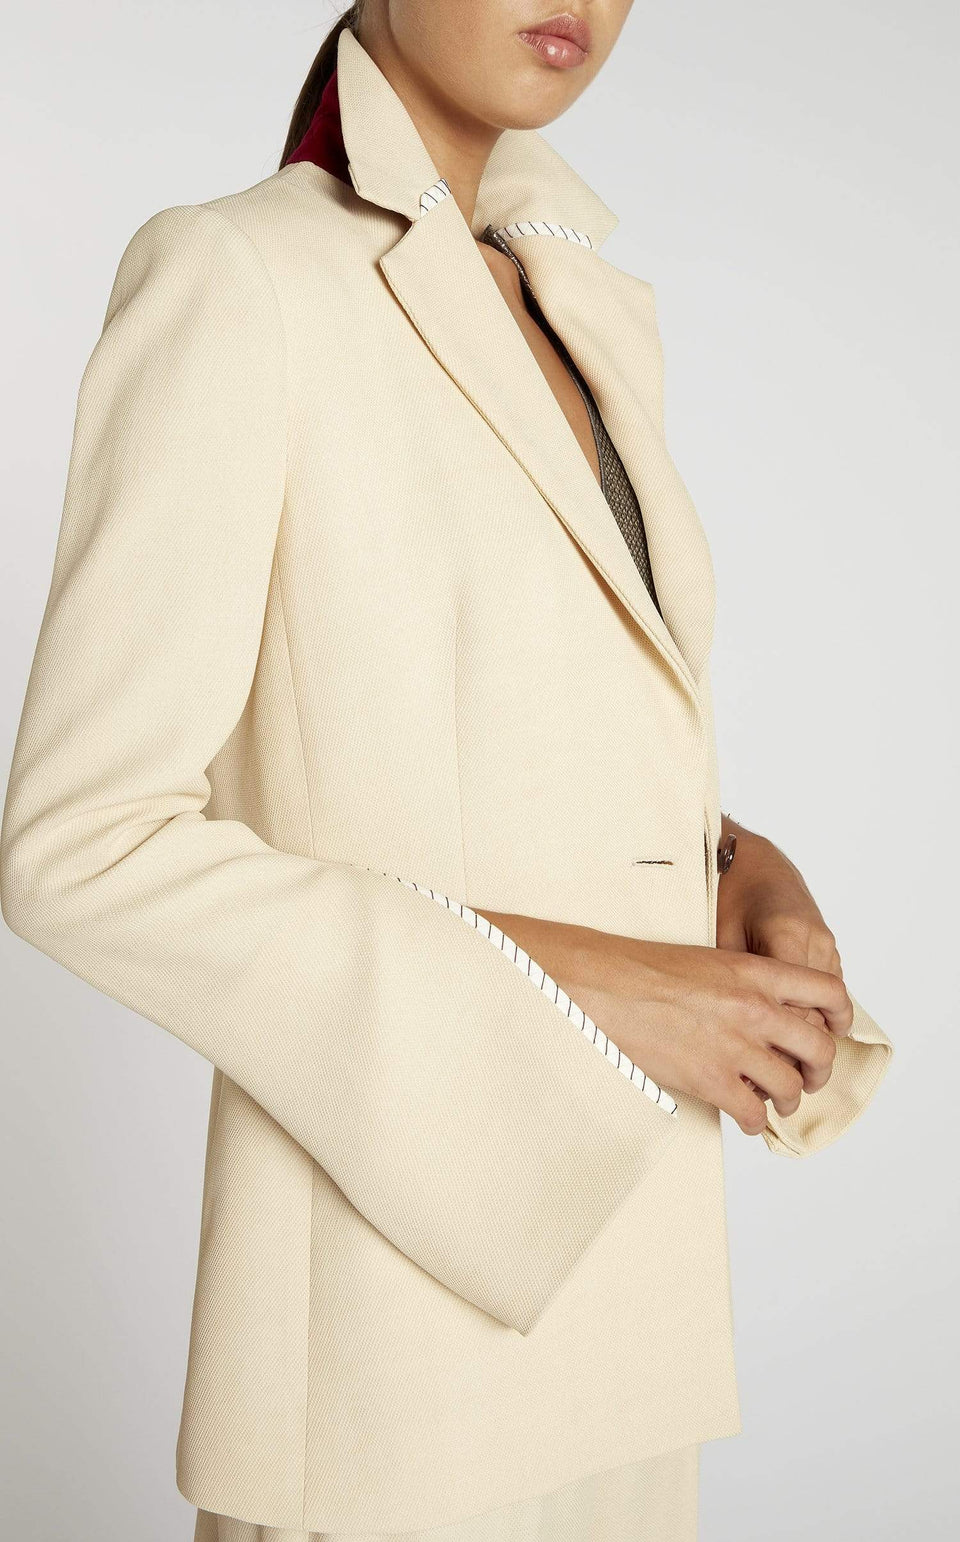 Moorehead Jacket In Oatmeal/Black from Roland Mouret